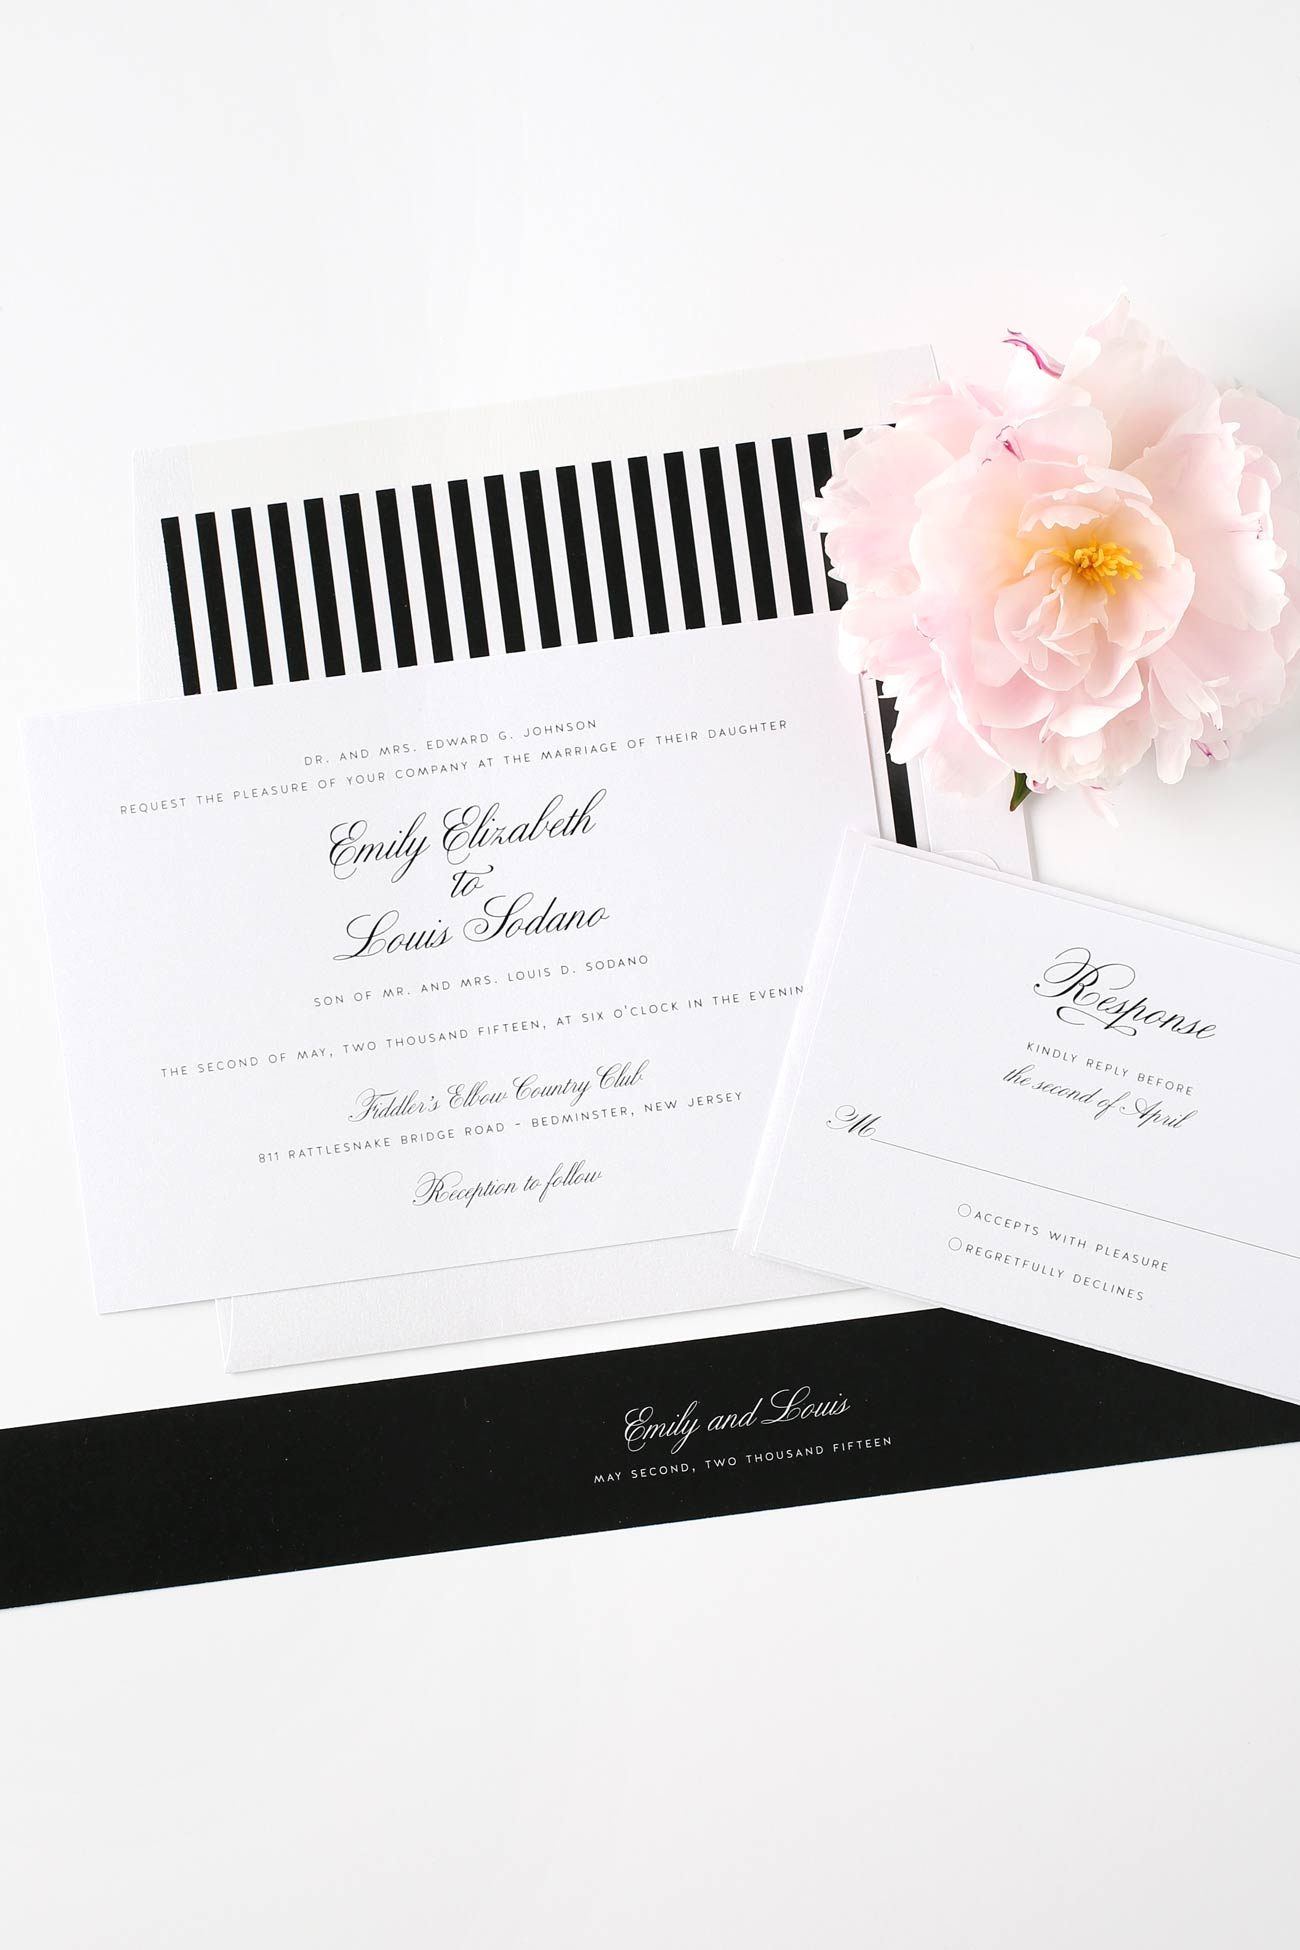 Vintage and Elegant wedding invitations